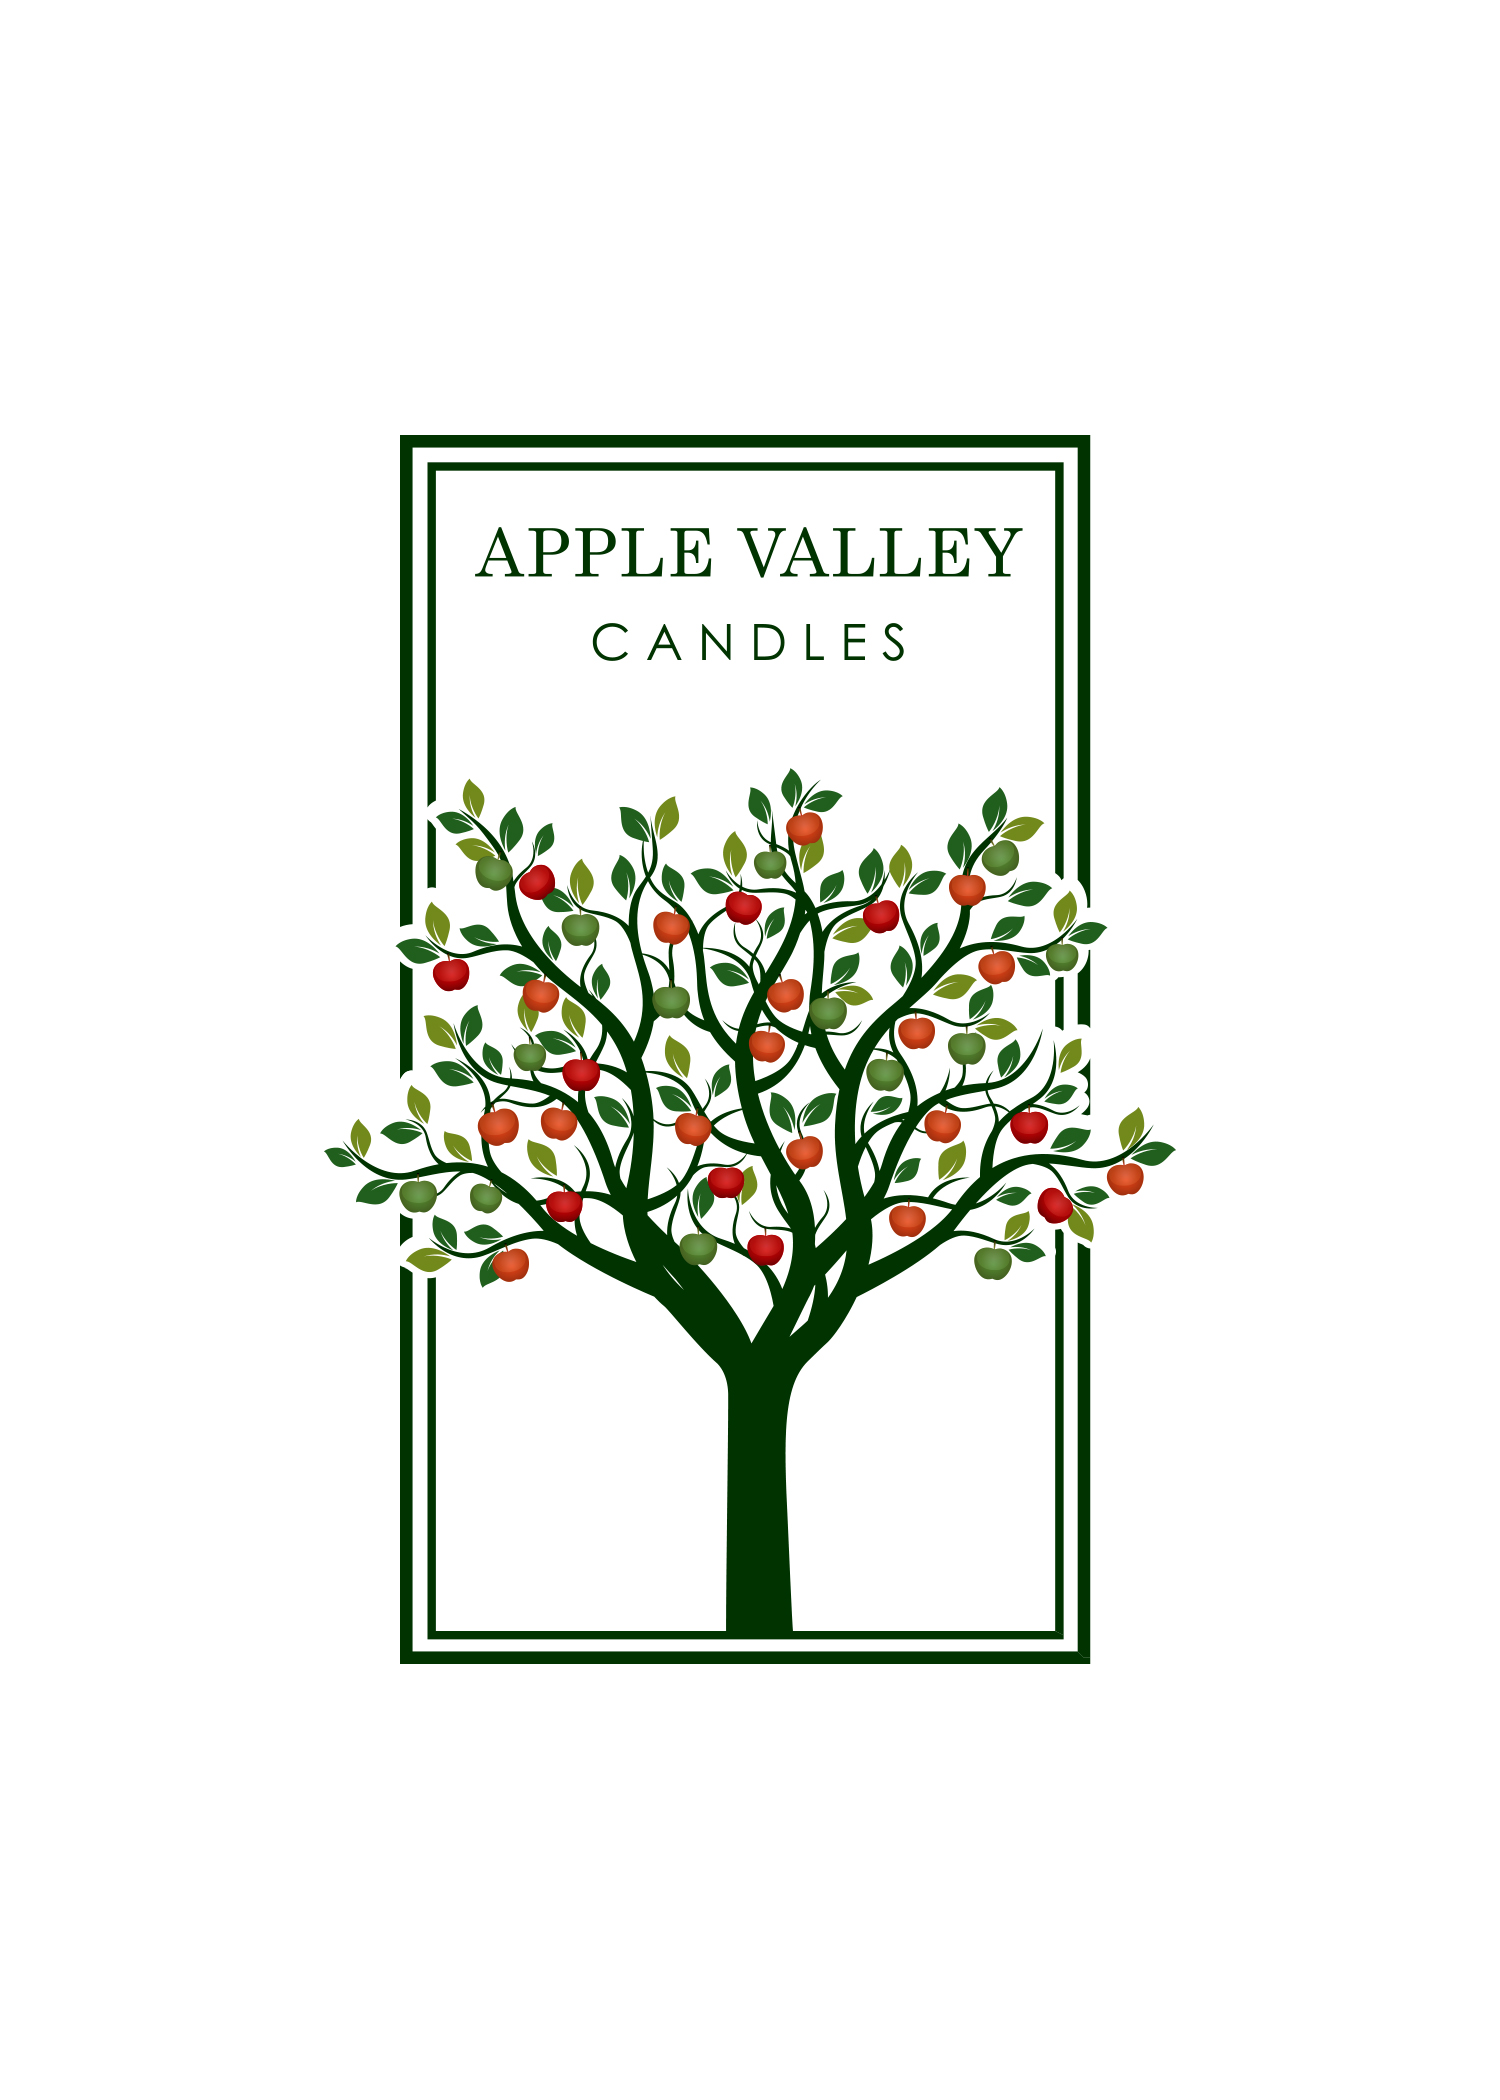 Apple Valley Candles